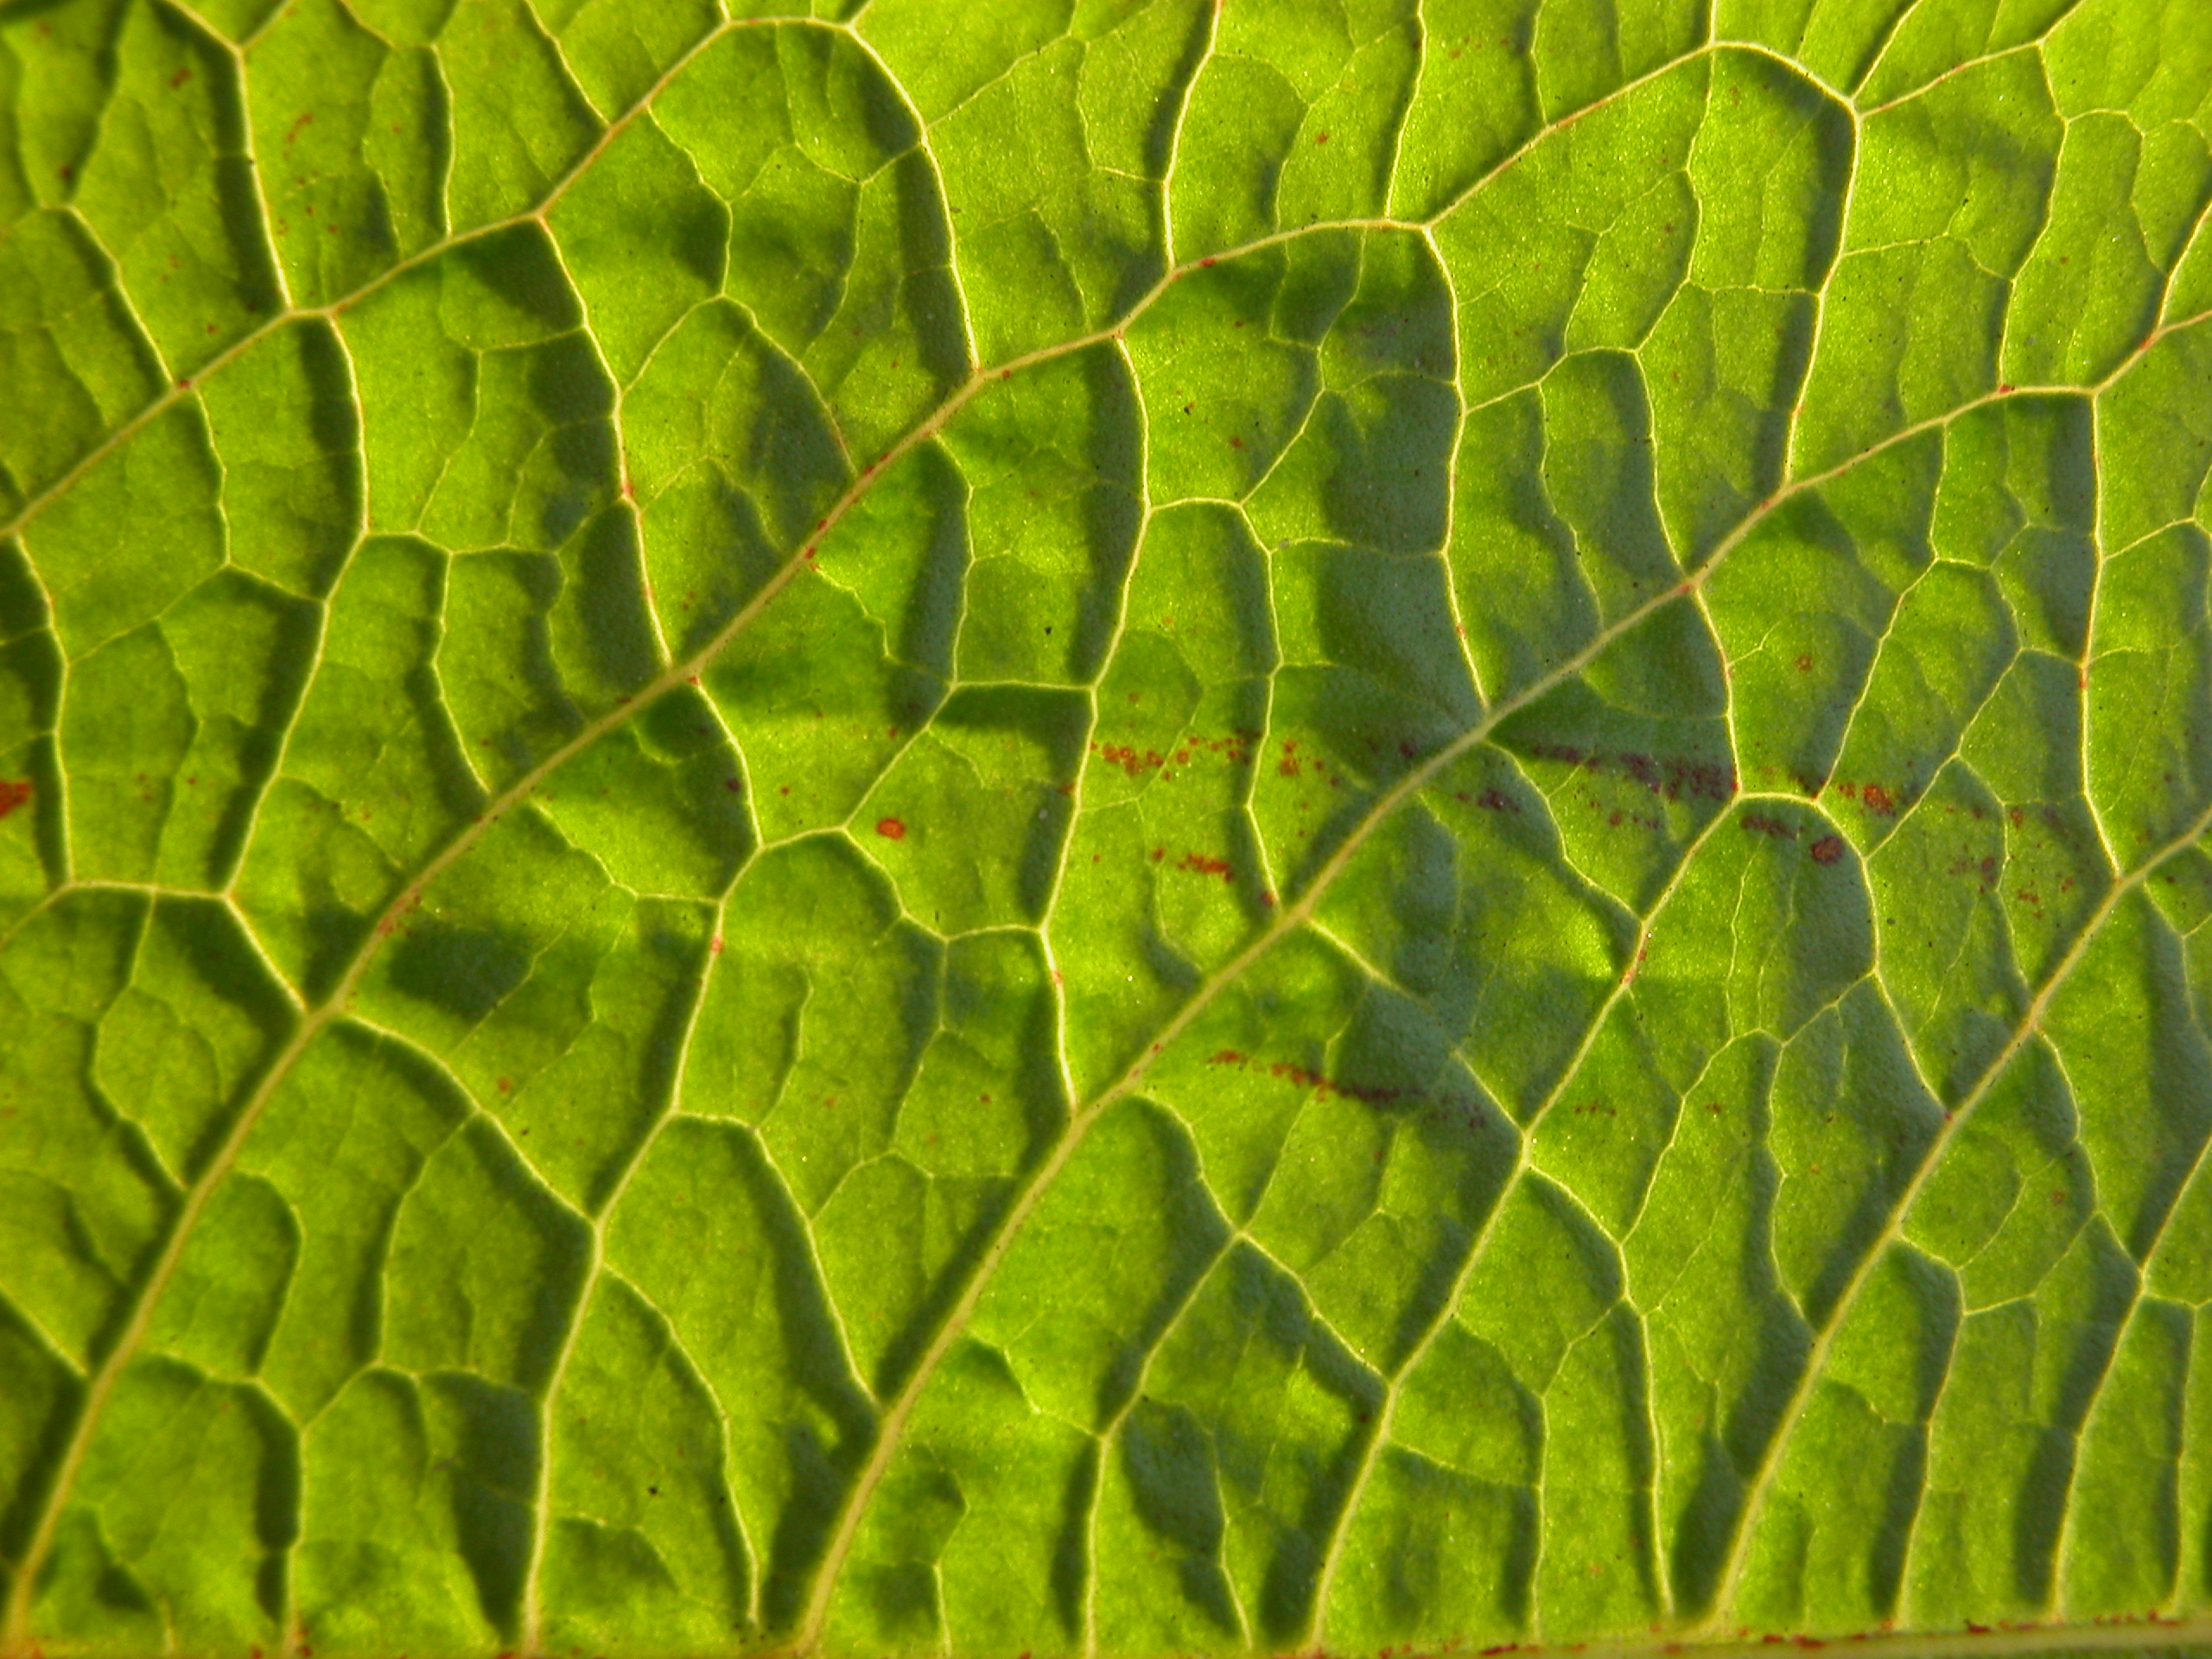 image after textures nature texture vein veins leaf green